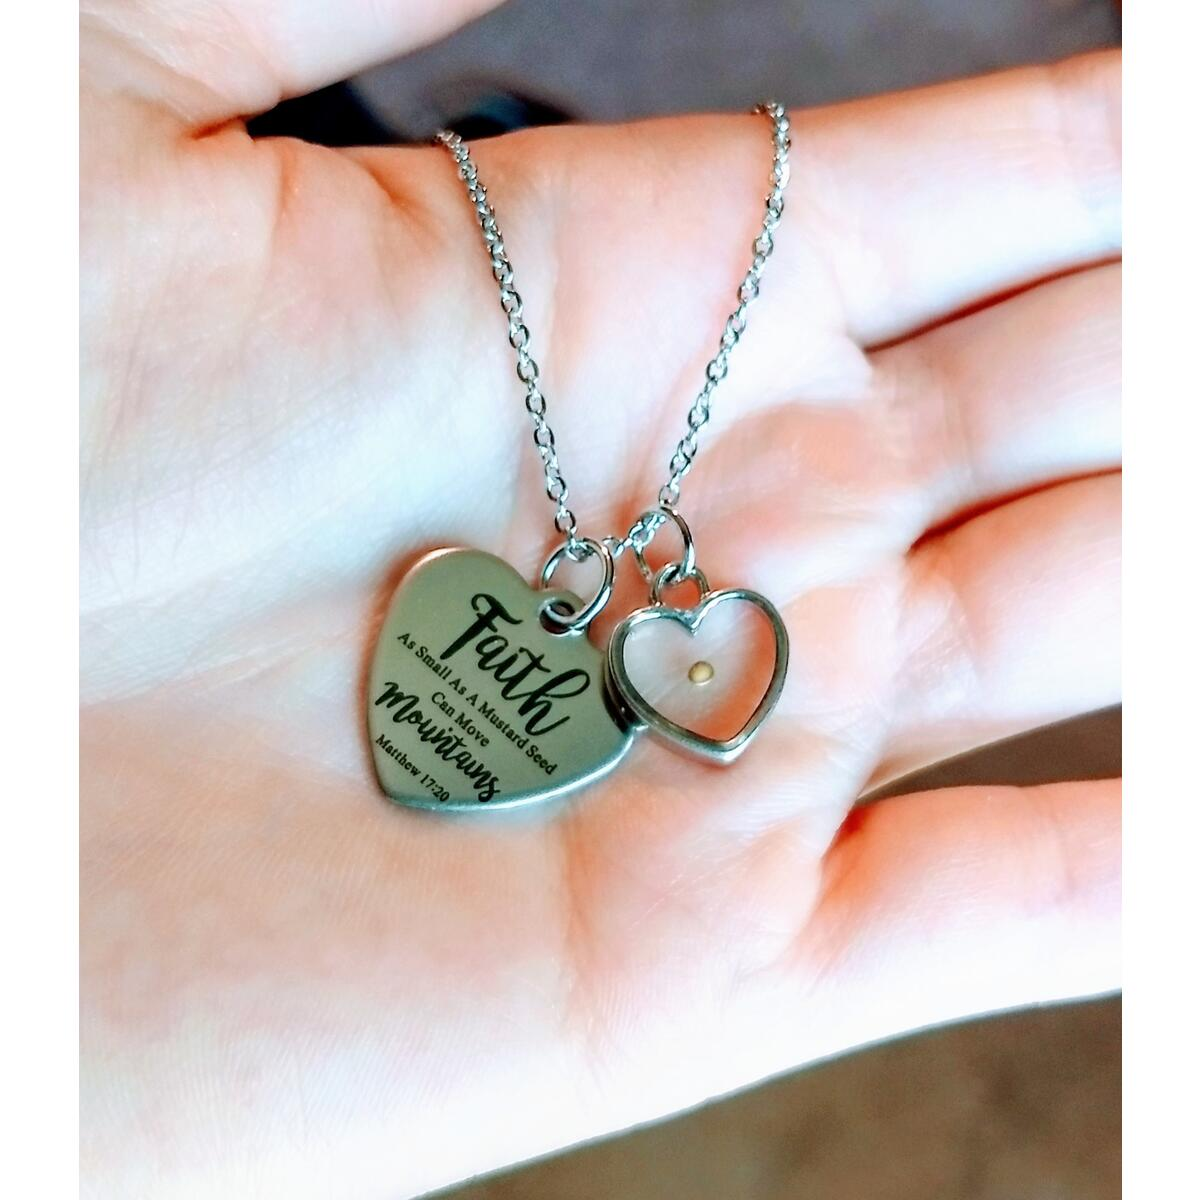 Real Mustard Seed Necklace Heart Faith Necklace for Women Christian Gifts